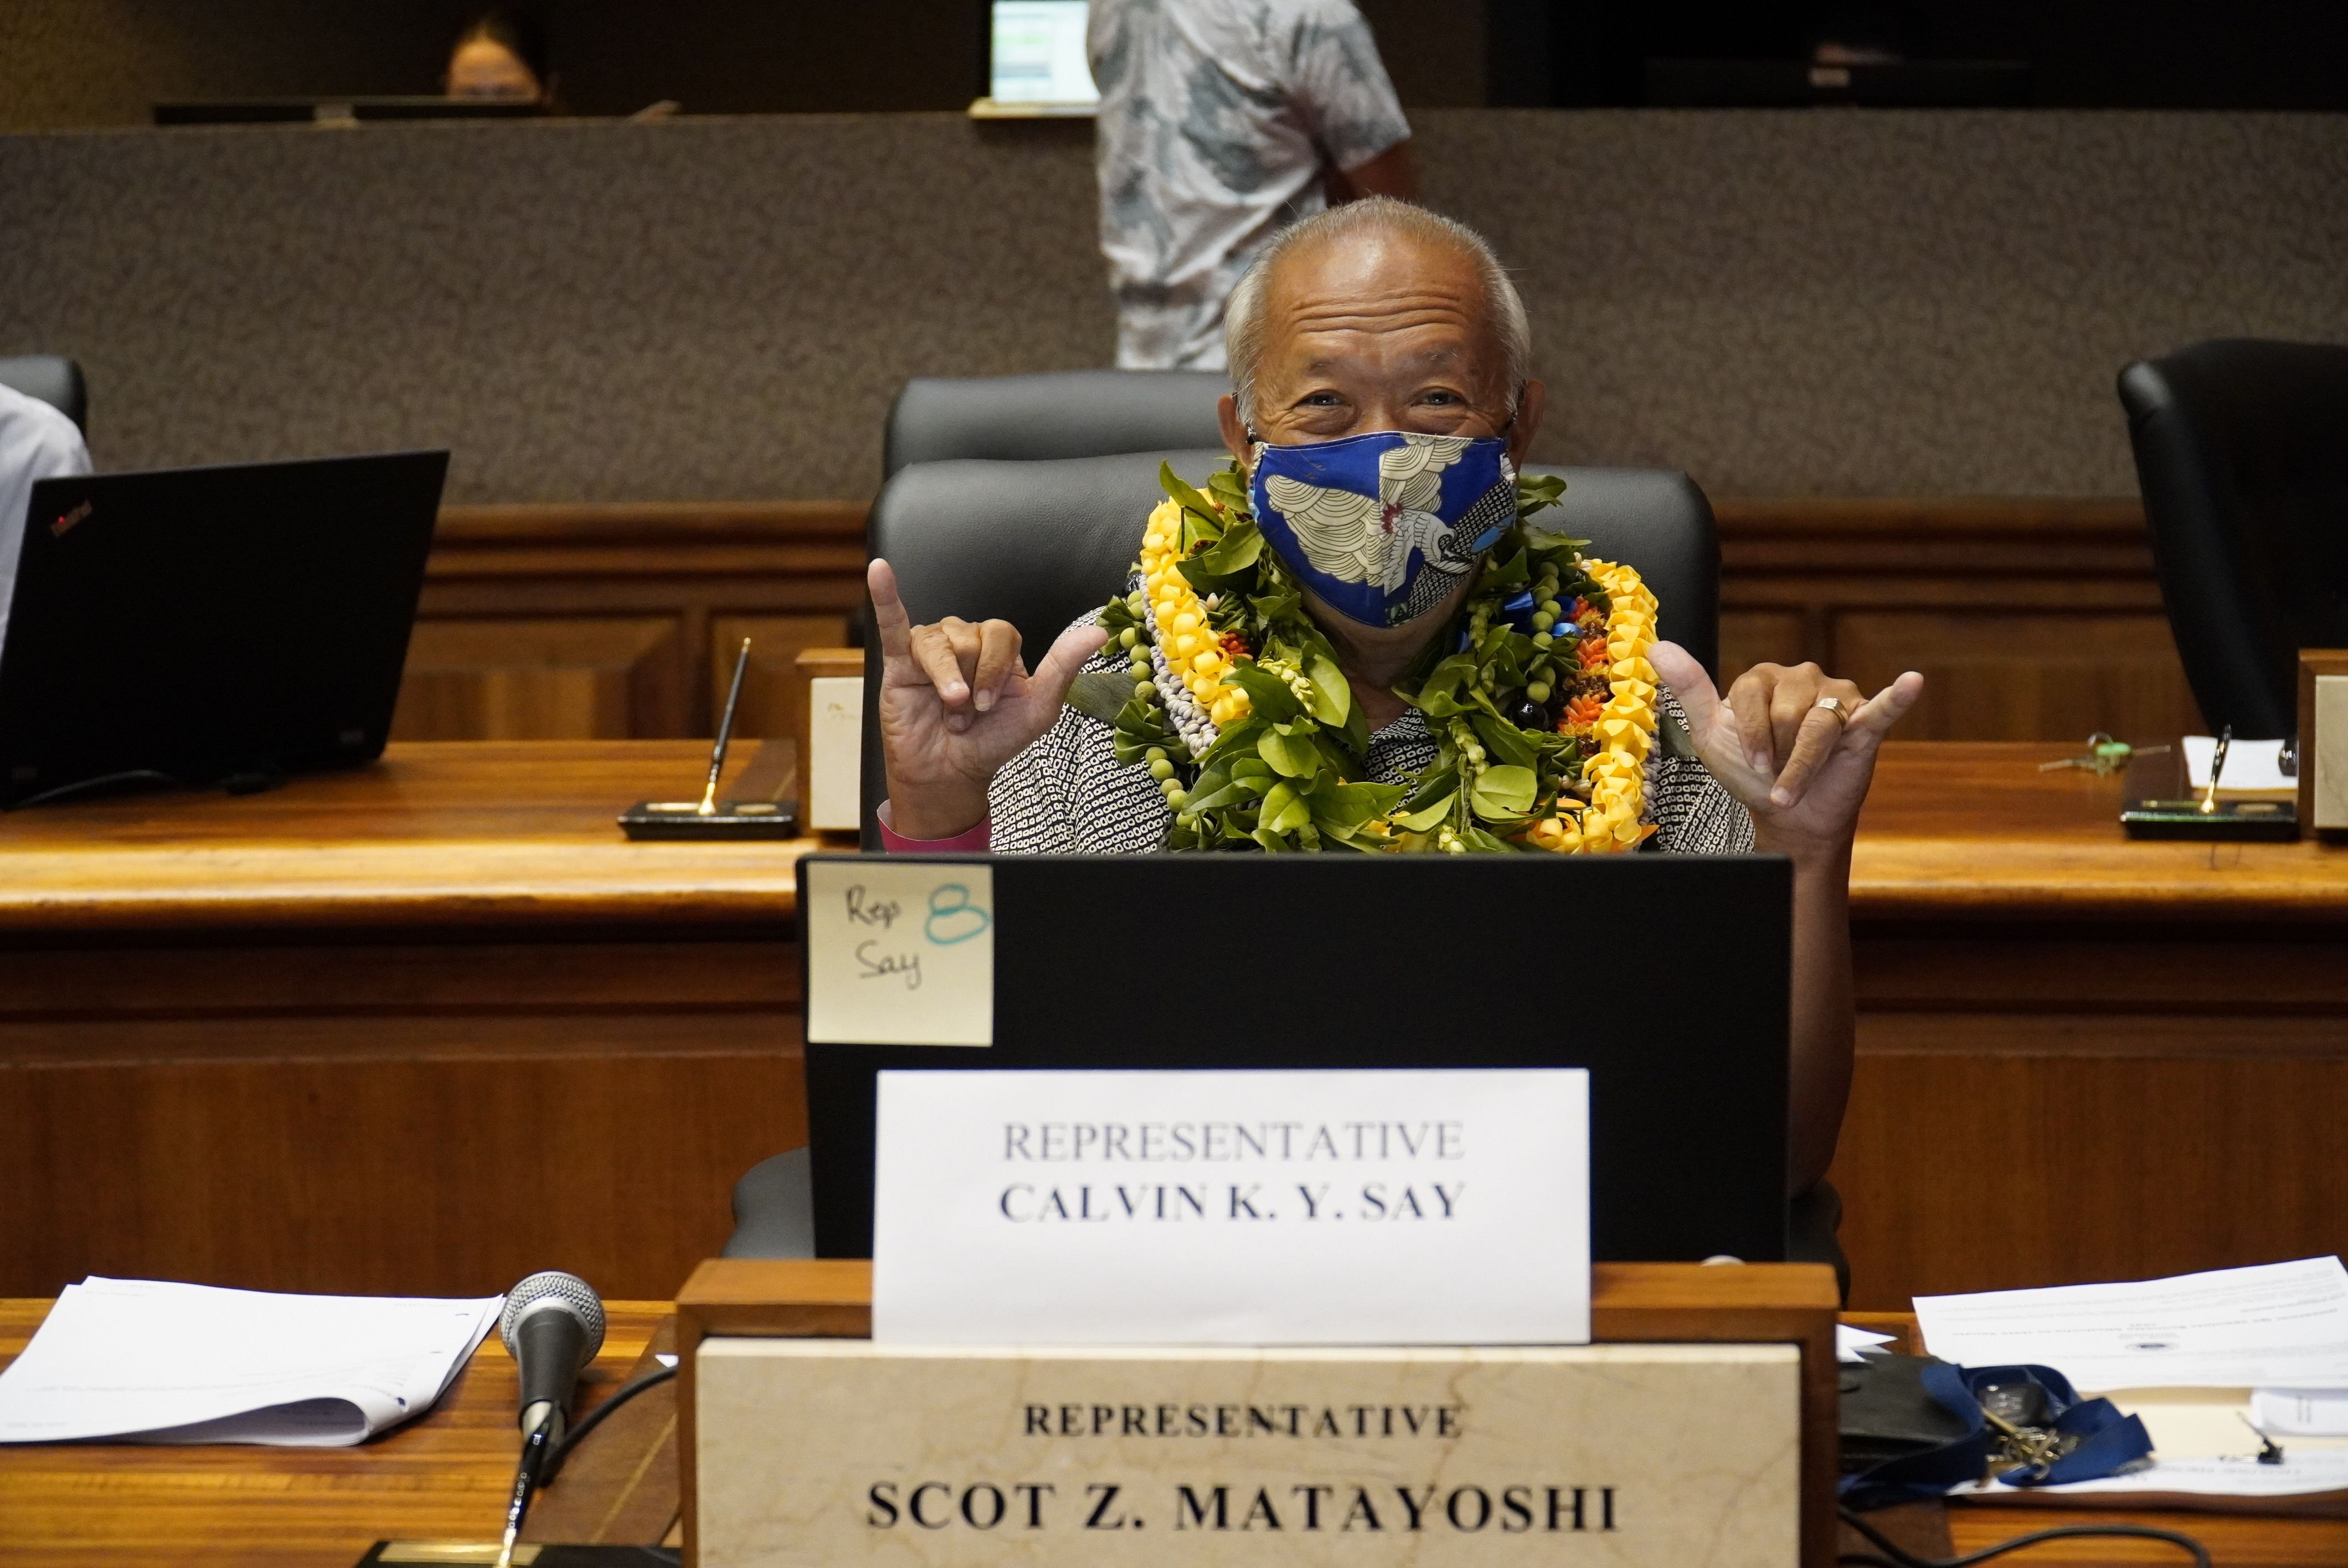 Speaker Calvin K.Y. Say serving his last day for the 2020 Hawaii Legislative Session.